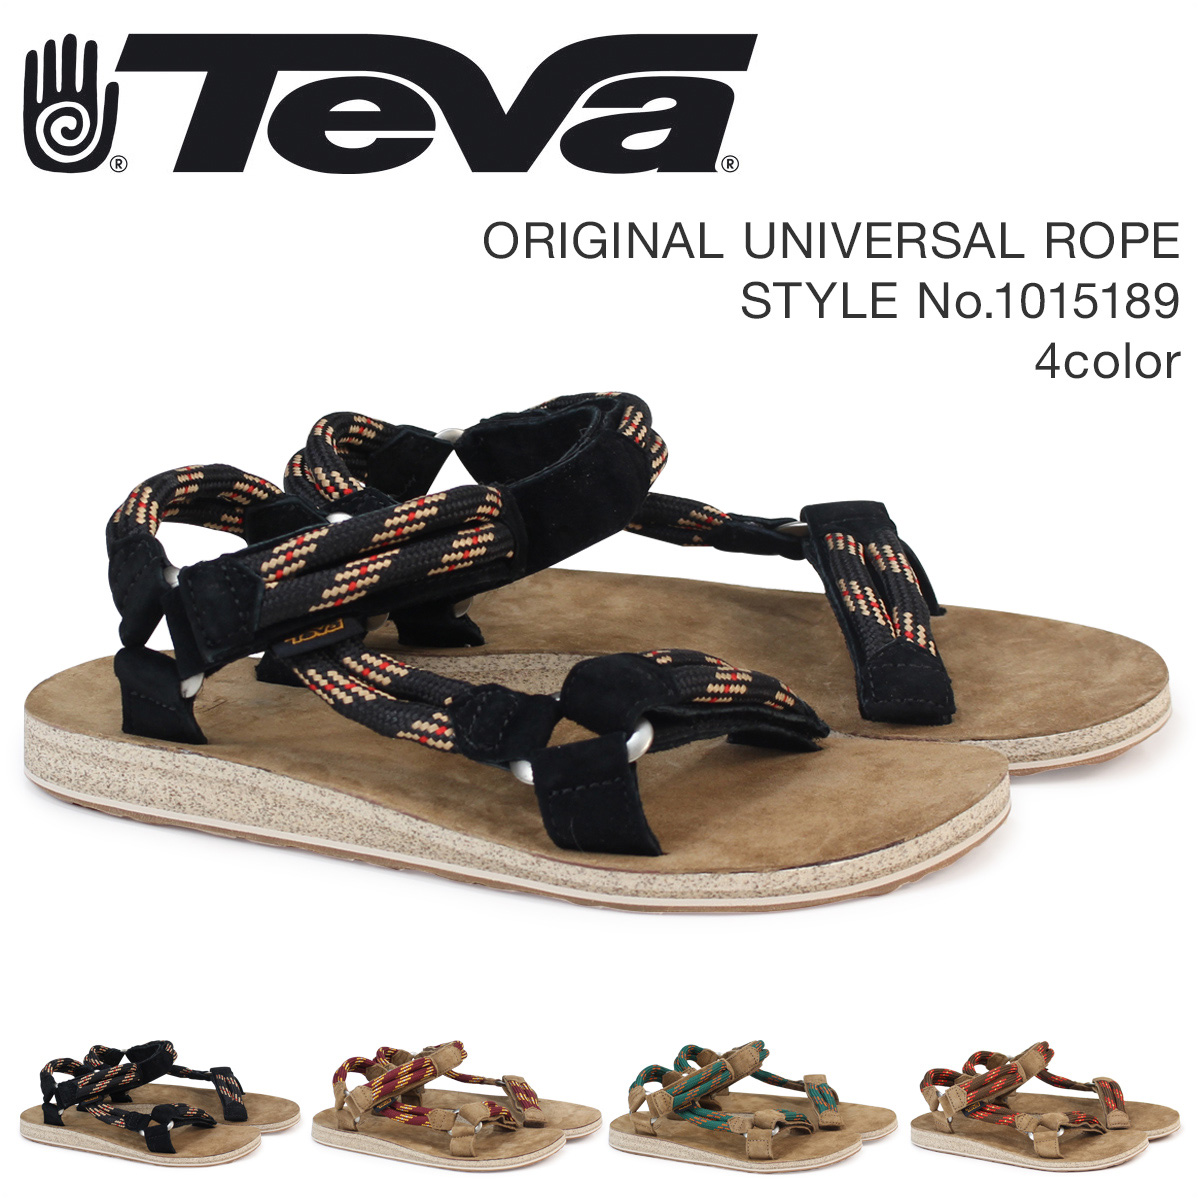 835530dc890 Because I developed sports sandals with a strap for the first time in the  world